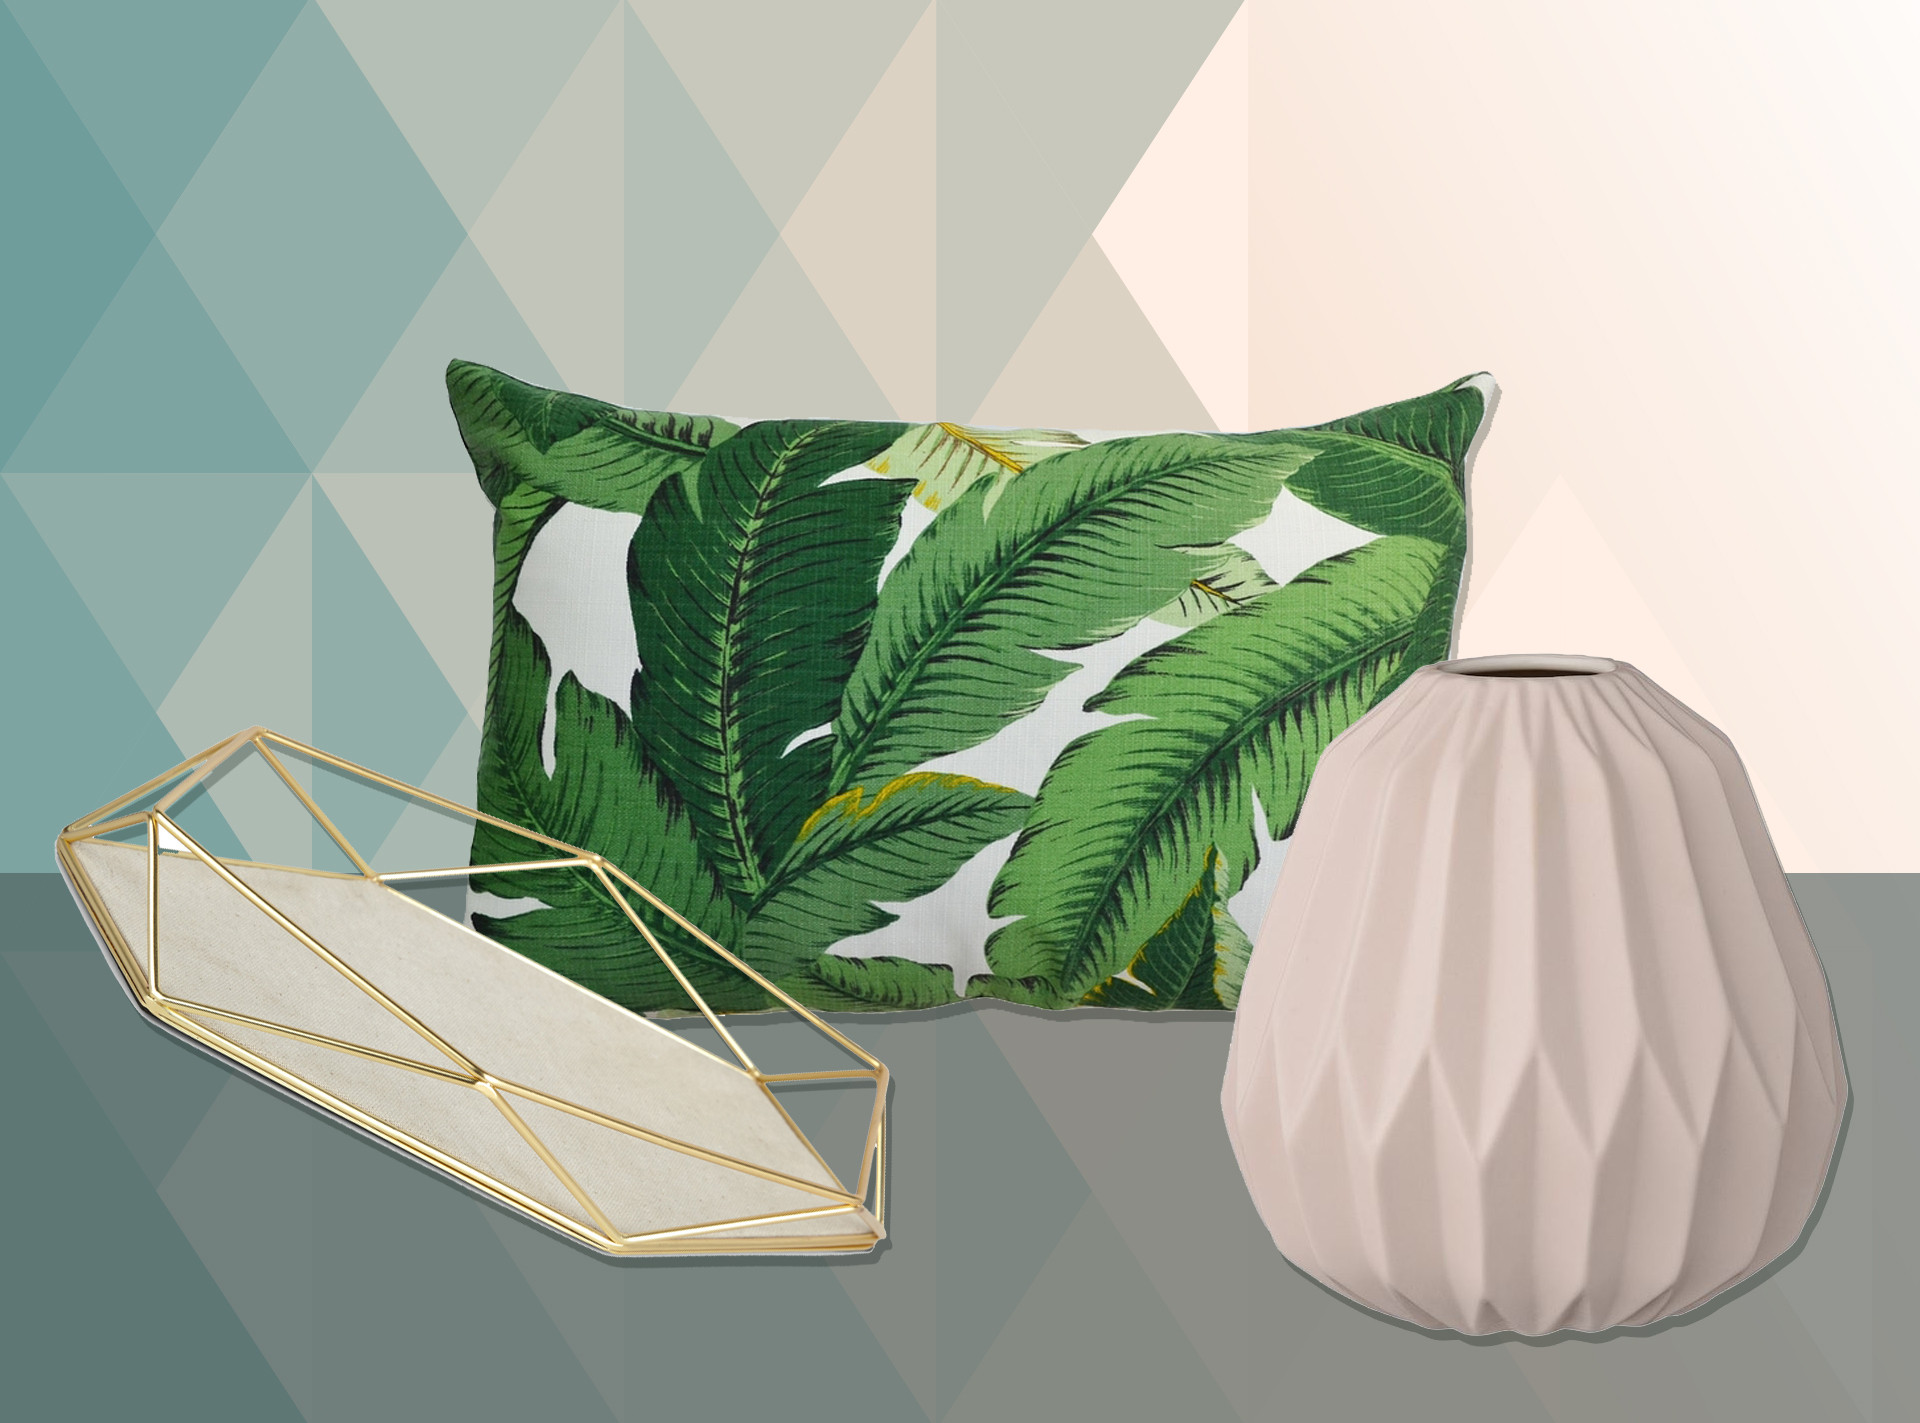 Refresh Your Home With 25% Off Lulu and Georgia